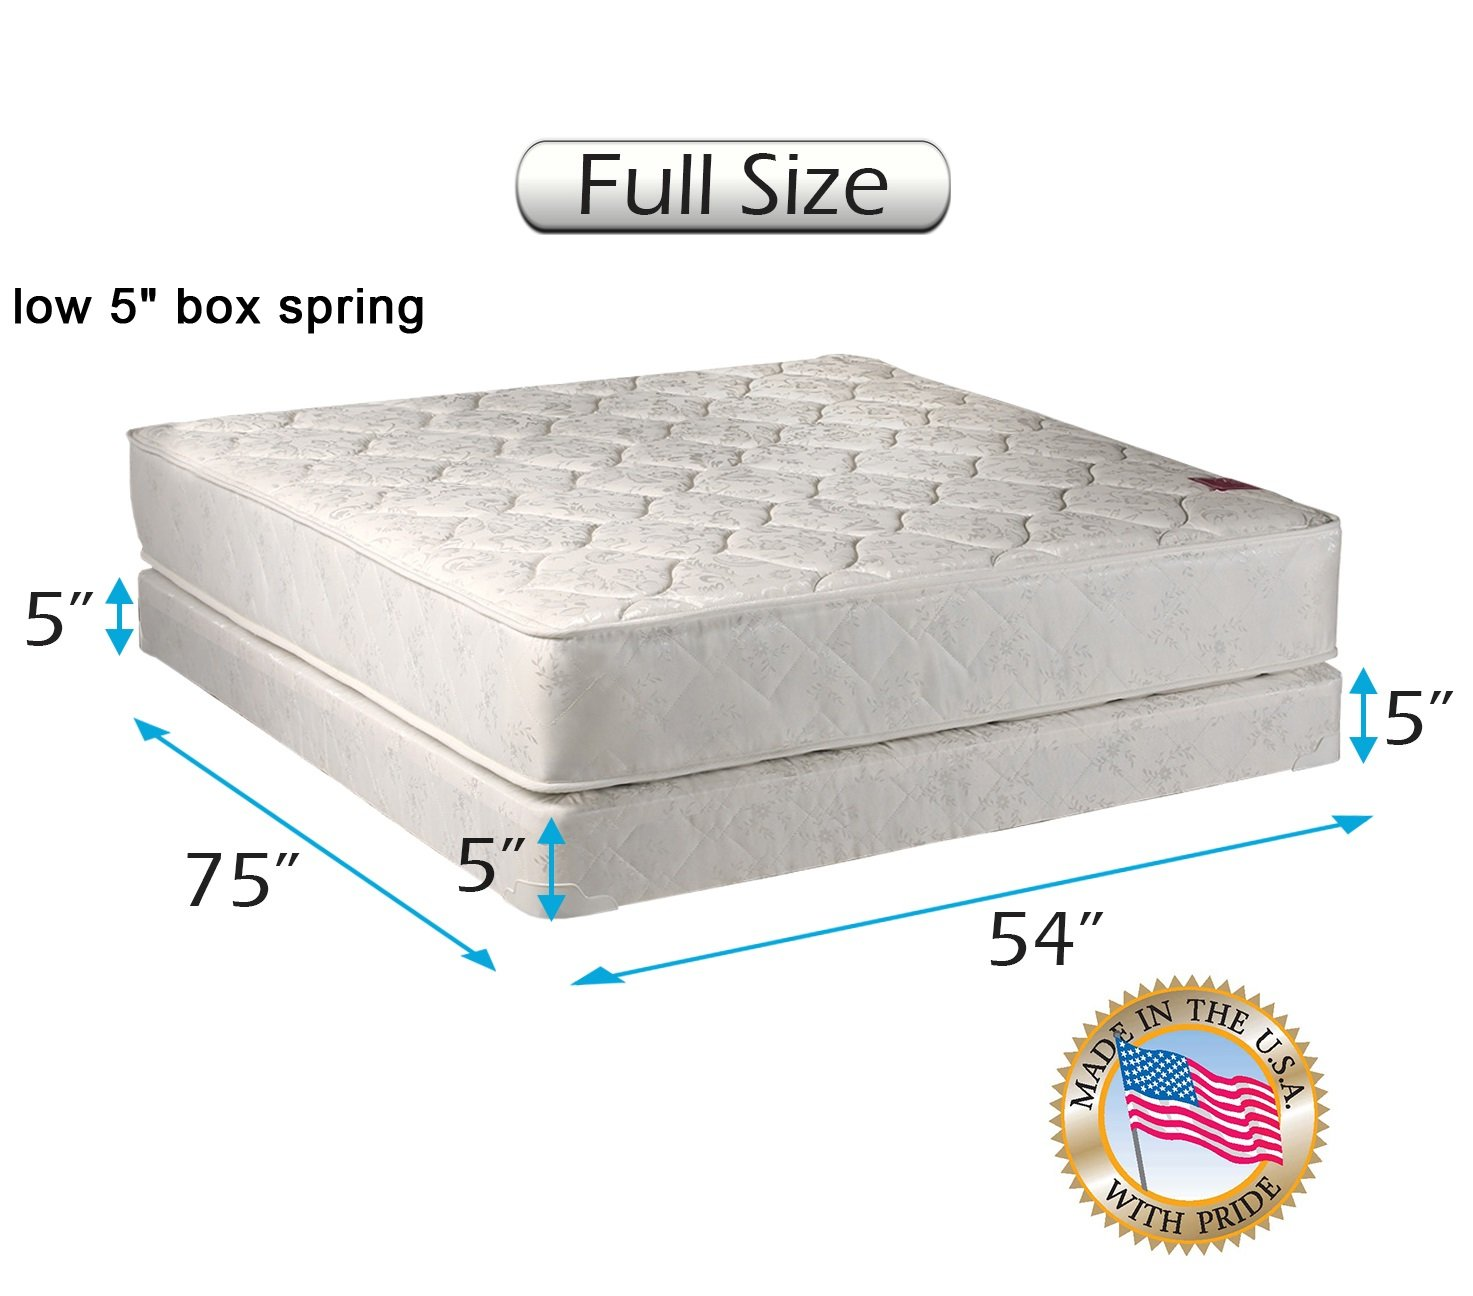 d92beff4da9 Amazon.com  Dream Solutions USA Legacy 2-Sided (Queen Size) Mattress and  Low Profile Box Spring Set with Bed Frame Included - Spine Support